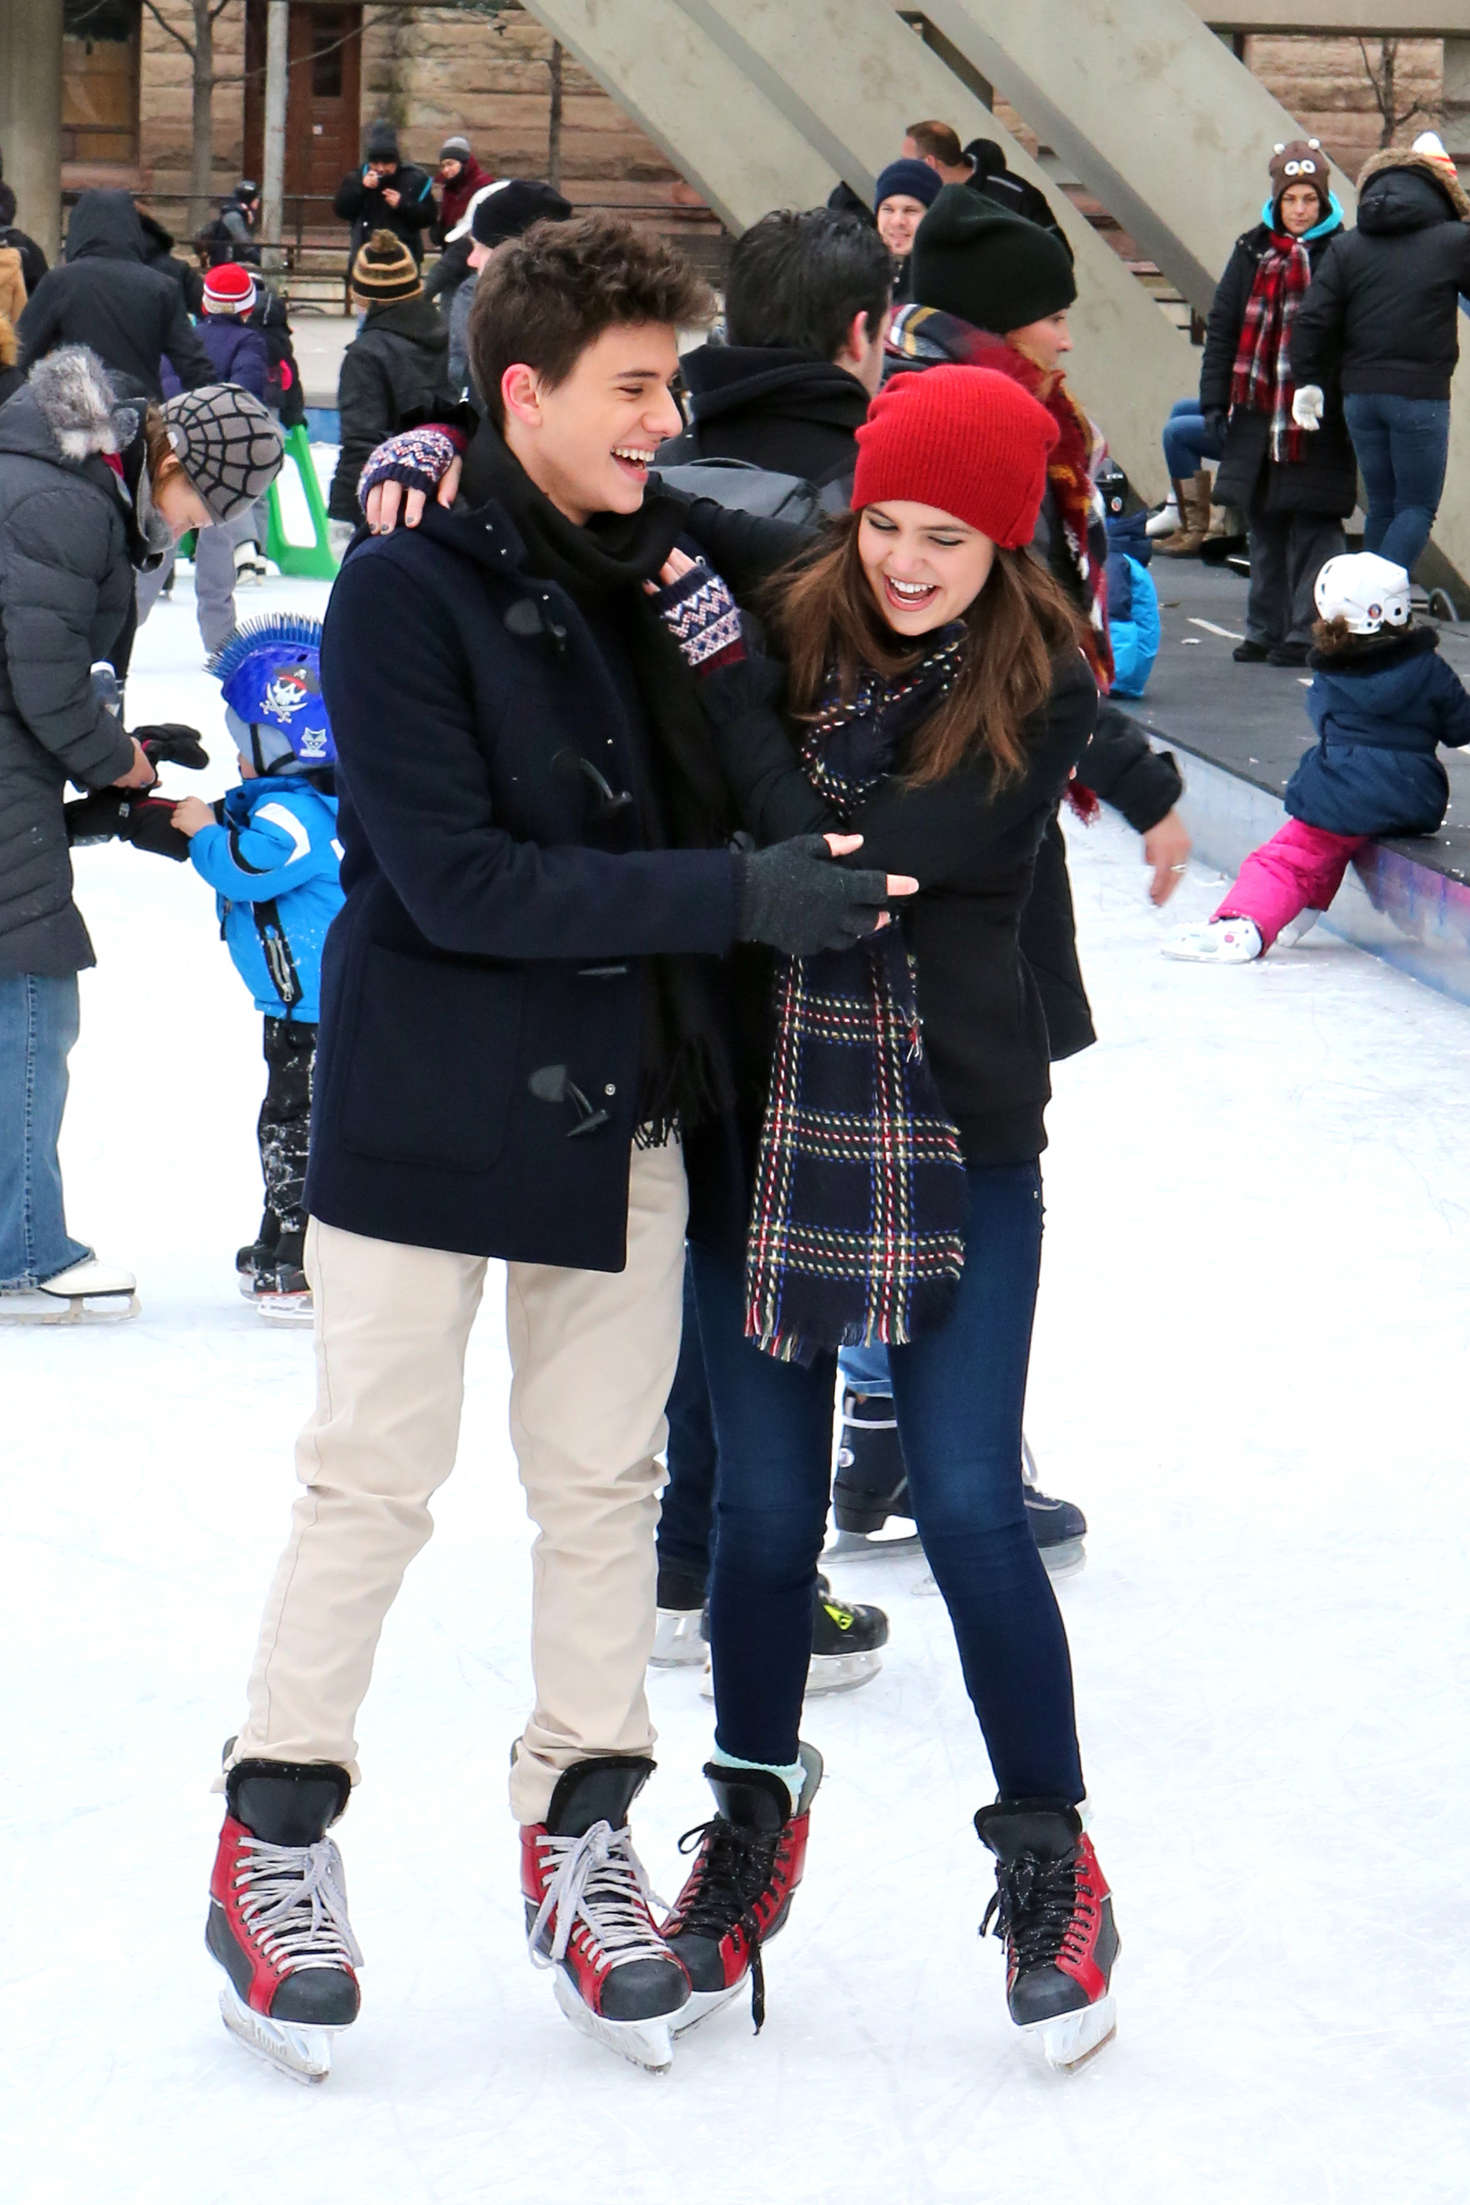 Bailee Madison - Ice skating at Nathan Phillips Square in Toronto